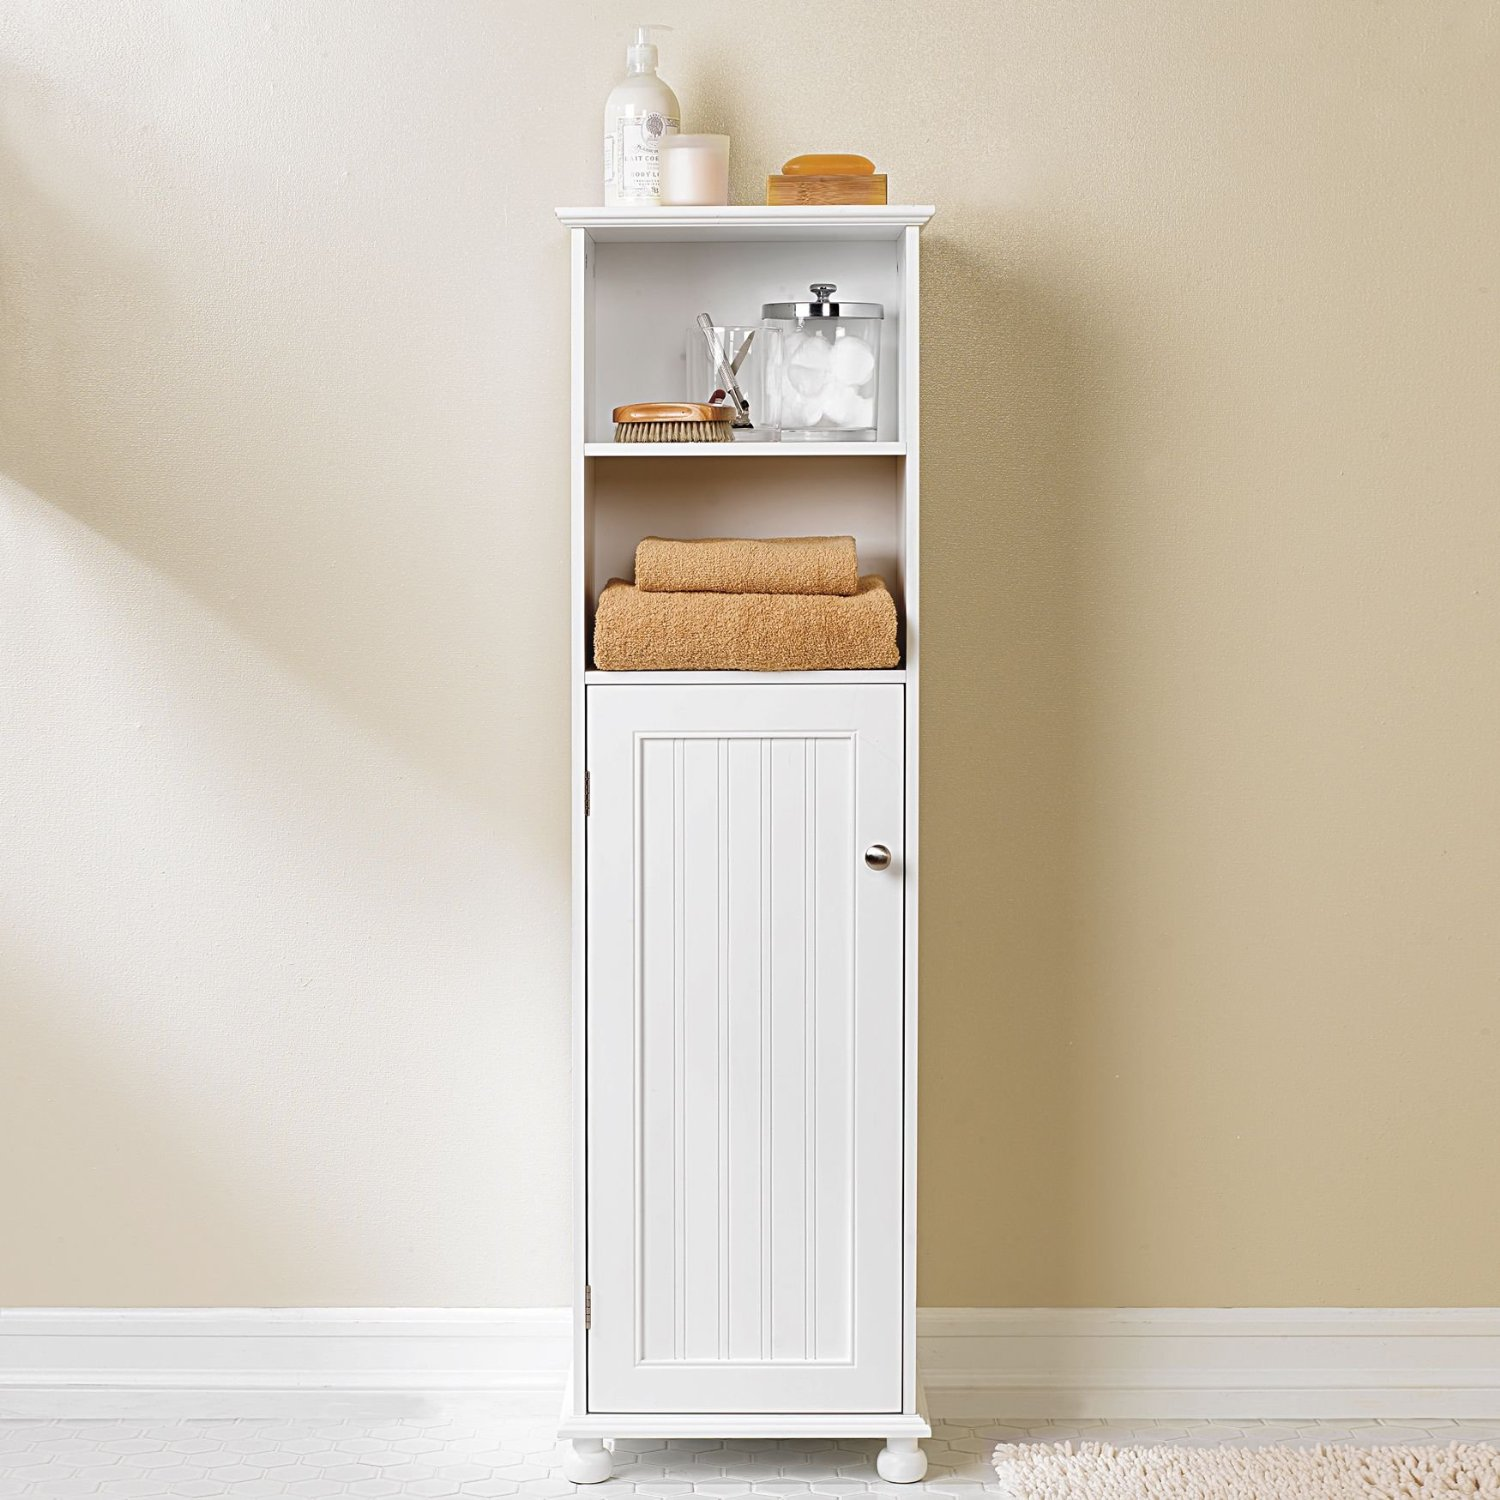 Elegant bathroom freestanding storage styles of bathroom storage cabinets vopblxy